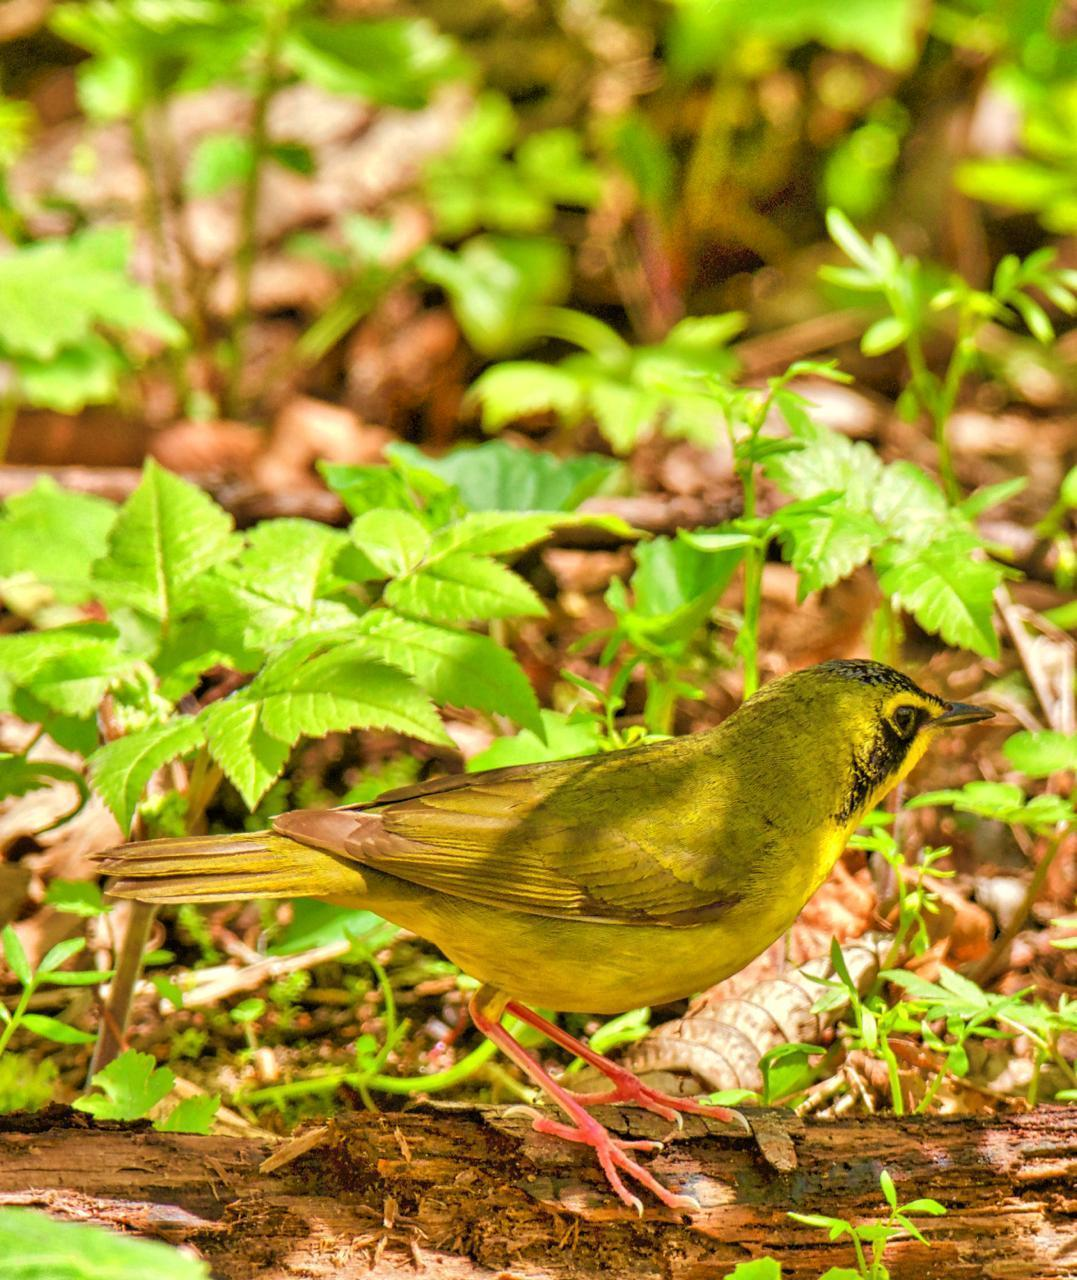 Kentucky Warbler Photo by Brian Avent